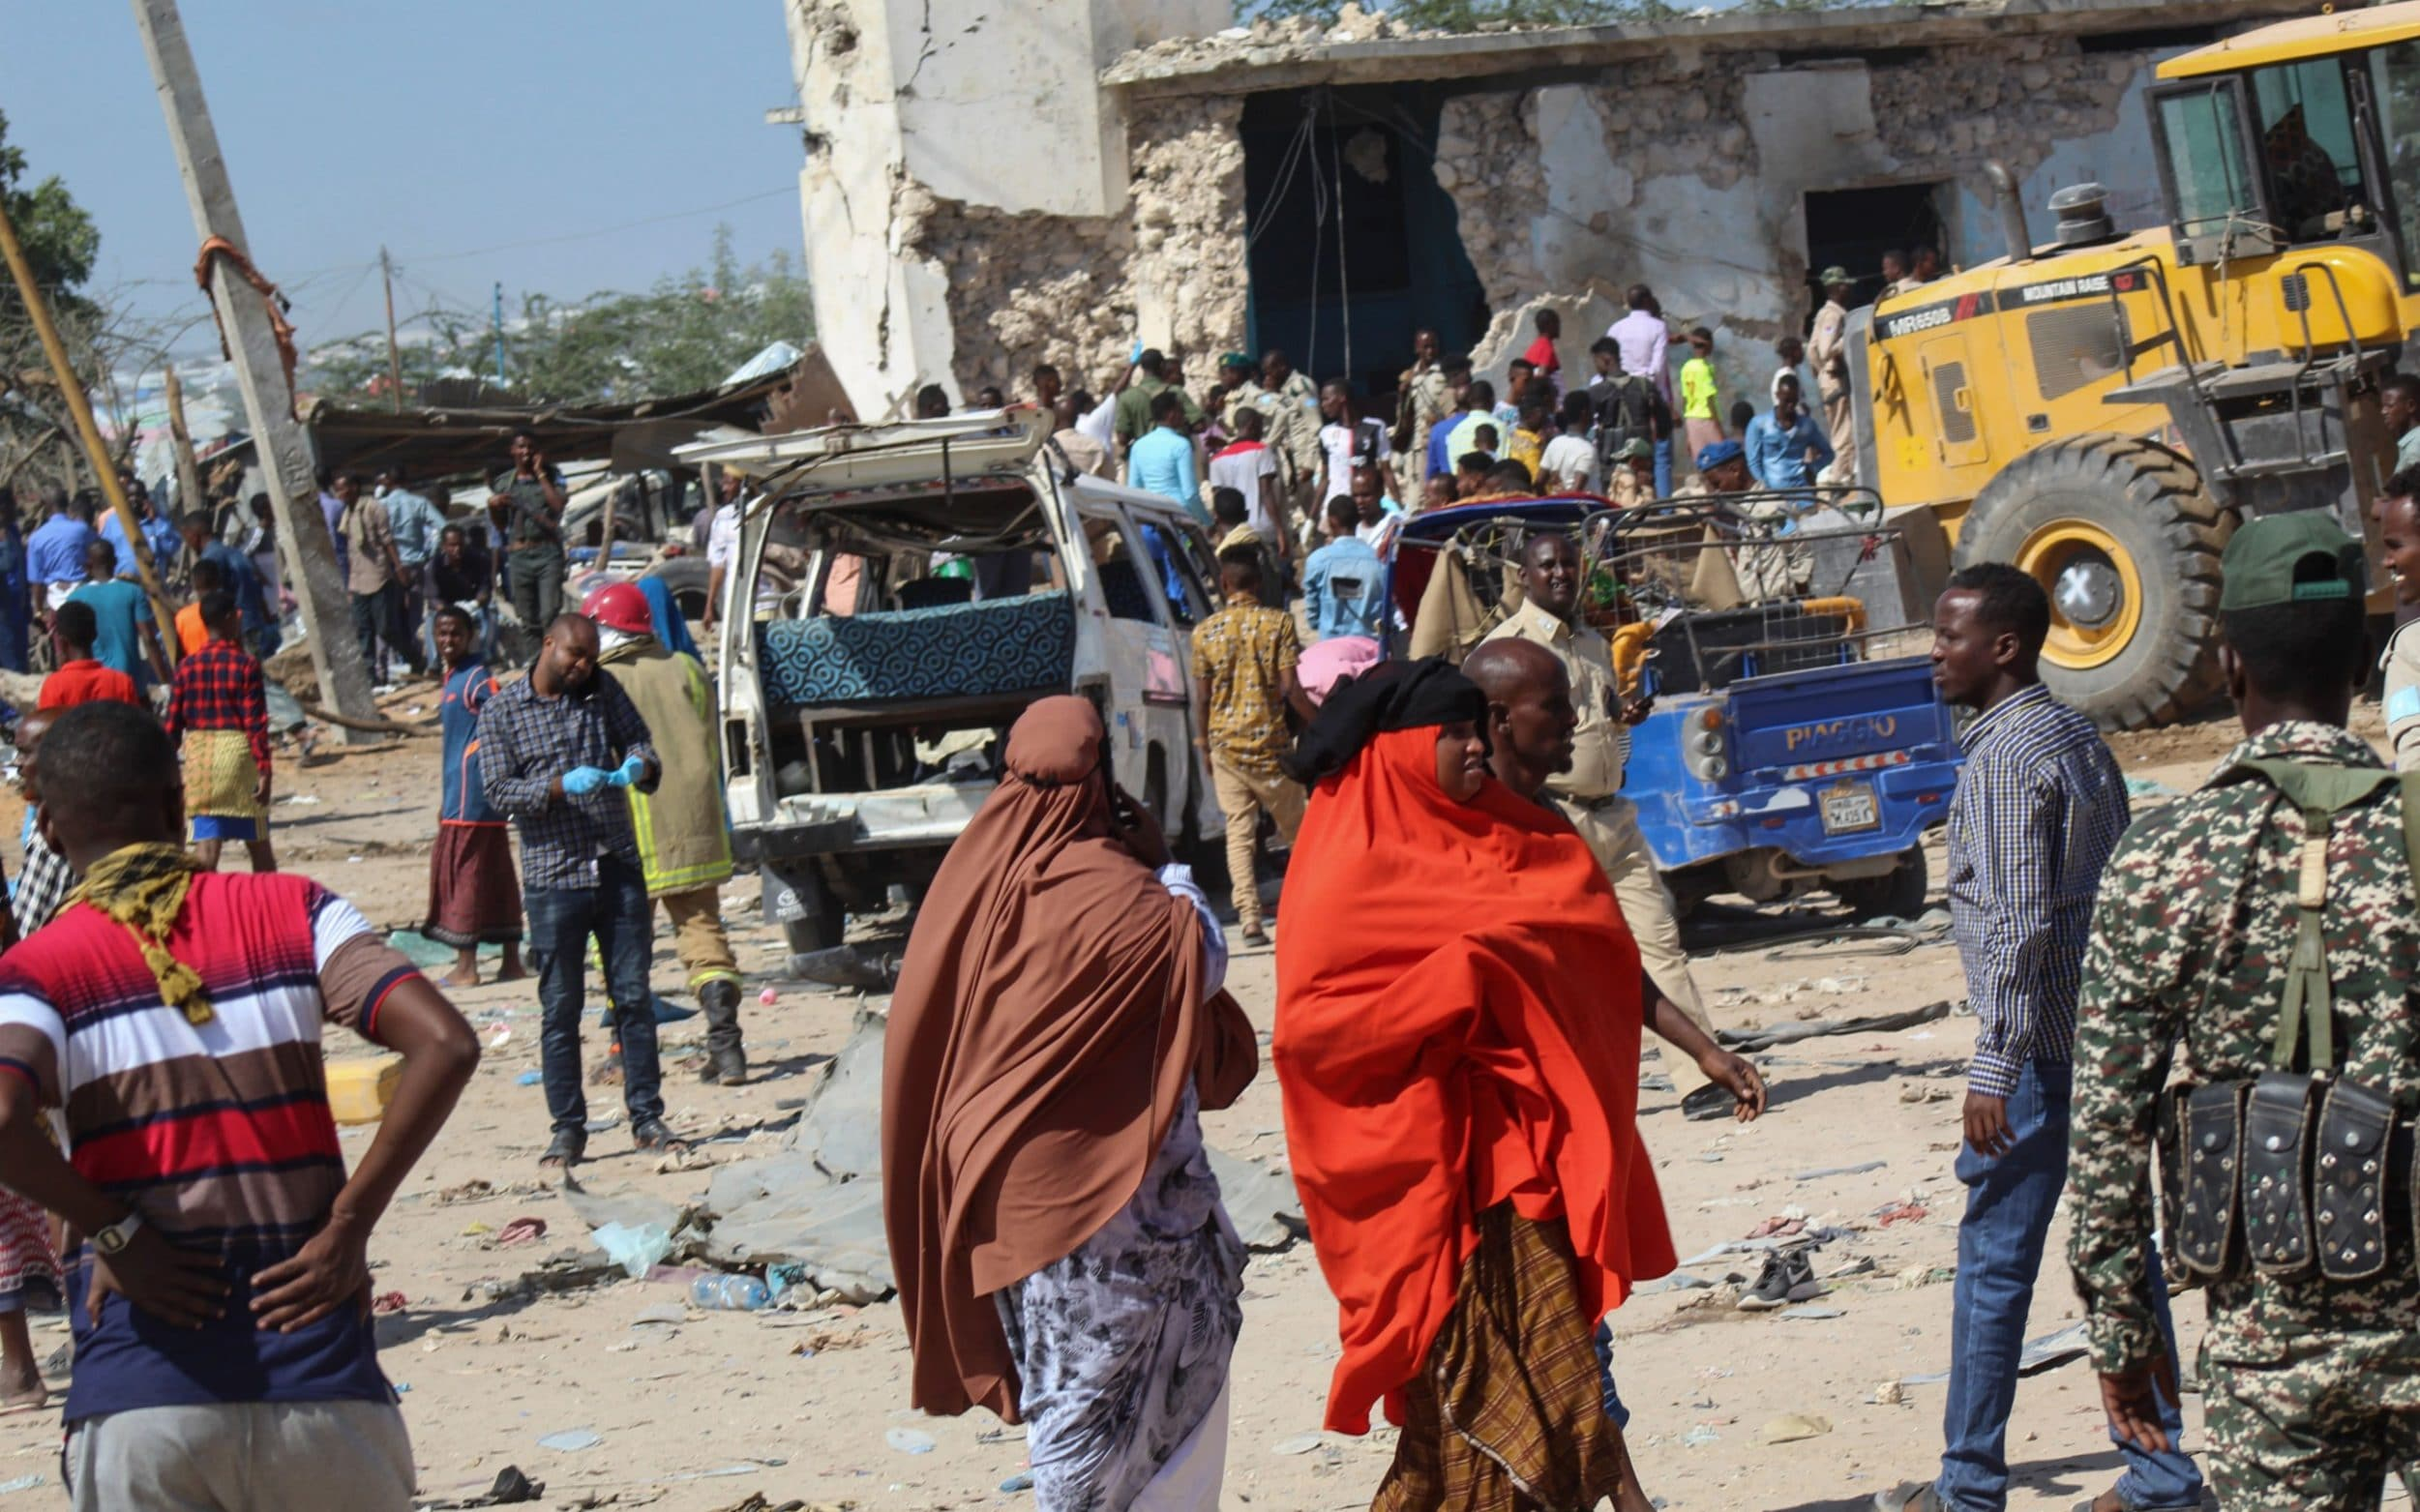 Somalis protest against al-Shabaab terror group as anger prompts rare apology for bombing that killed 90